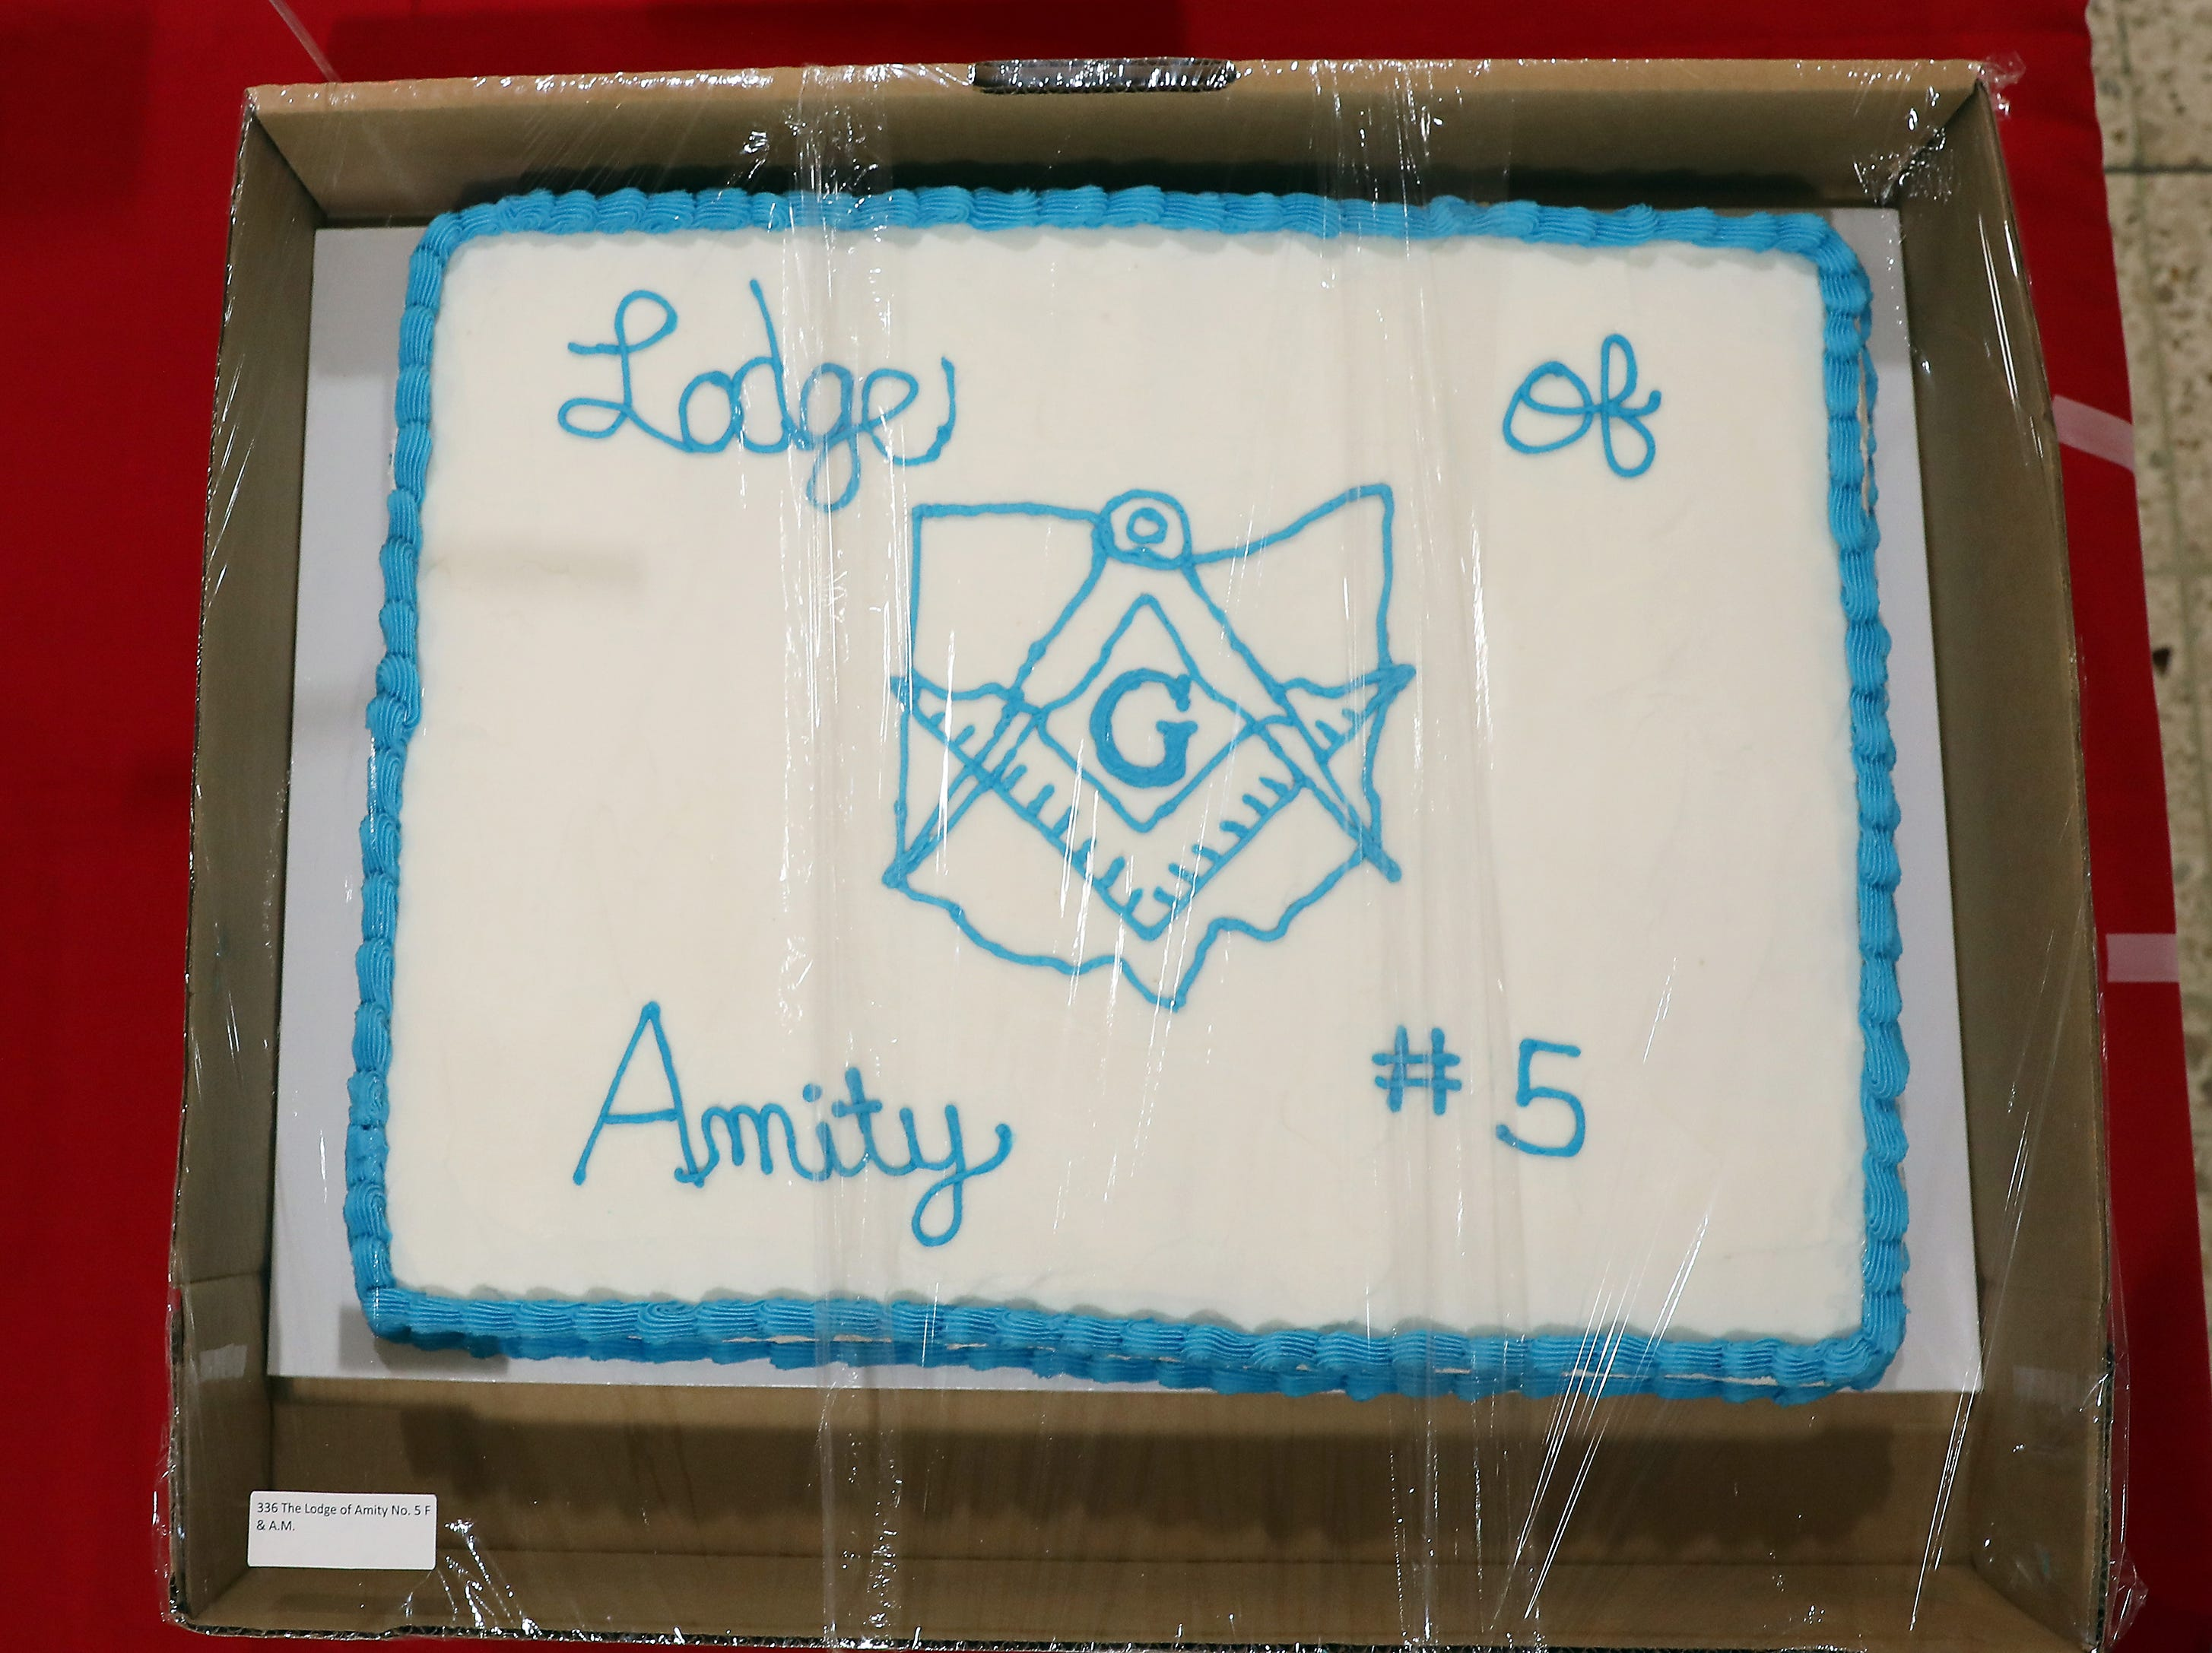 2:30 P.M. Friday cake 336 The Lodge of Amity No. 5 - $50 Old Market House Inn gift card